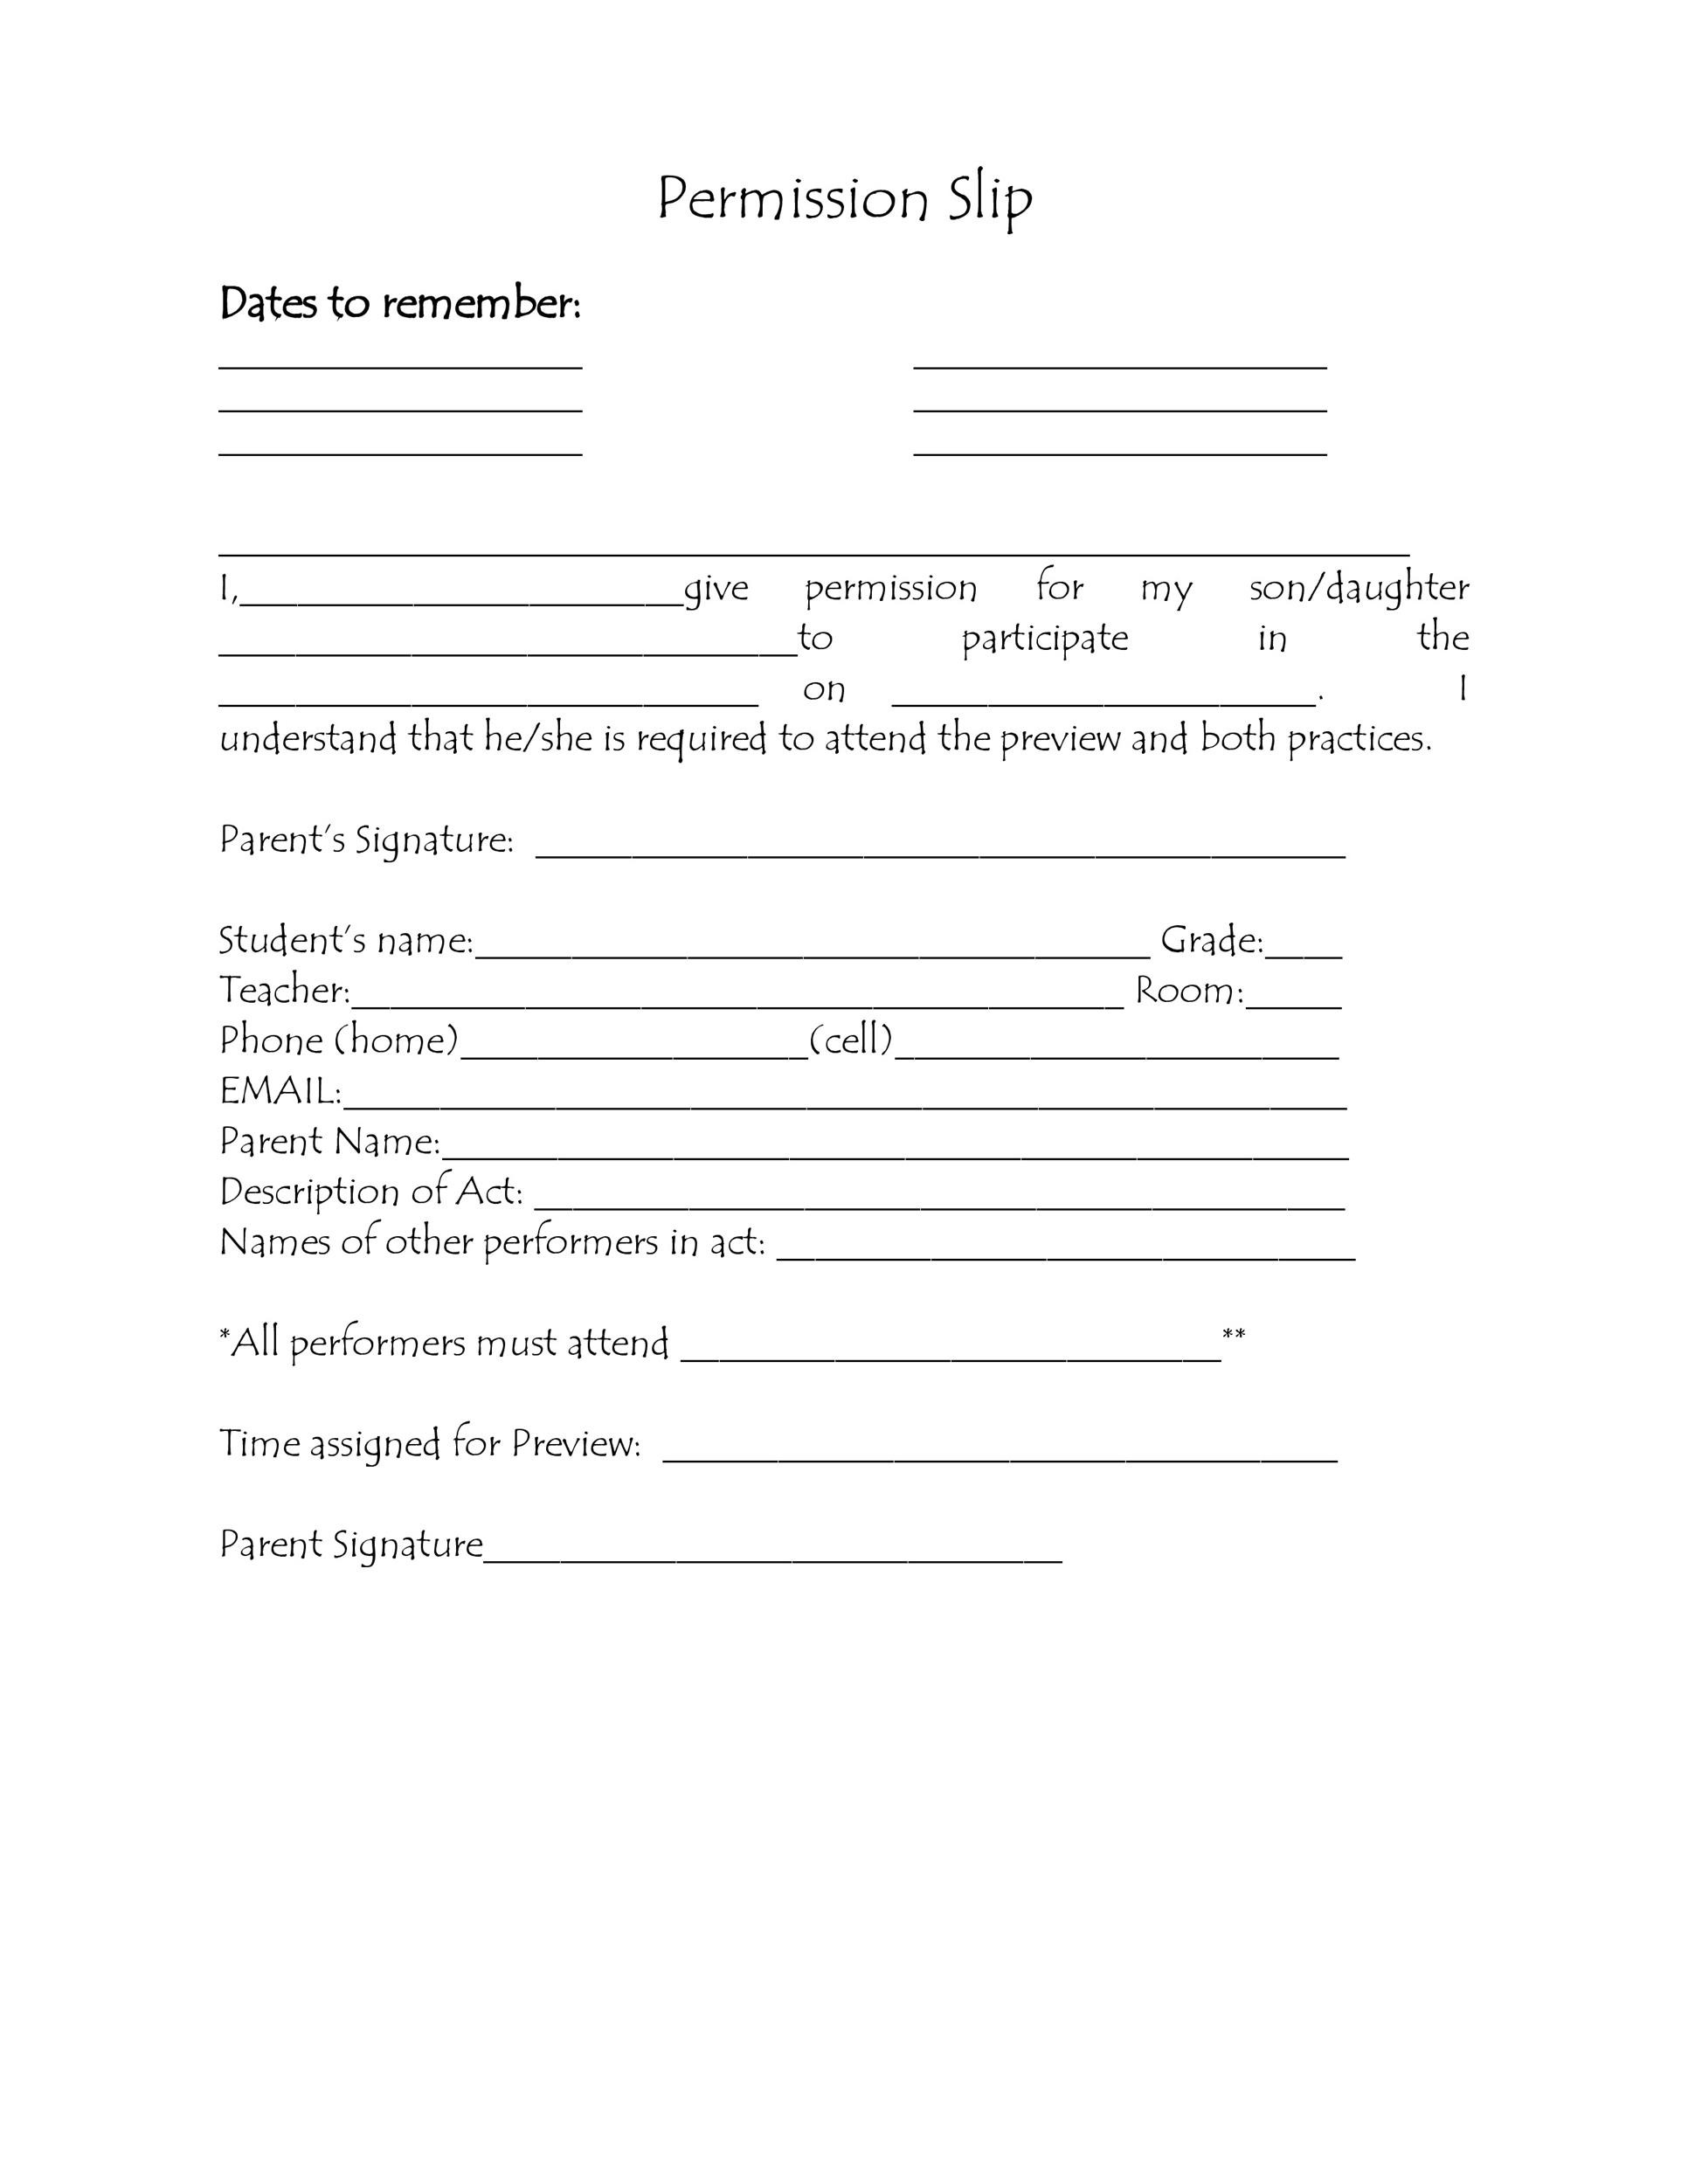 35 permission slip templates field trip forms free permission slip 27 printable permission slip 27 maxwellsz